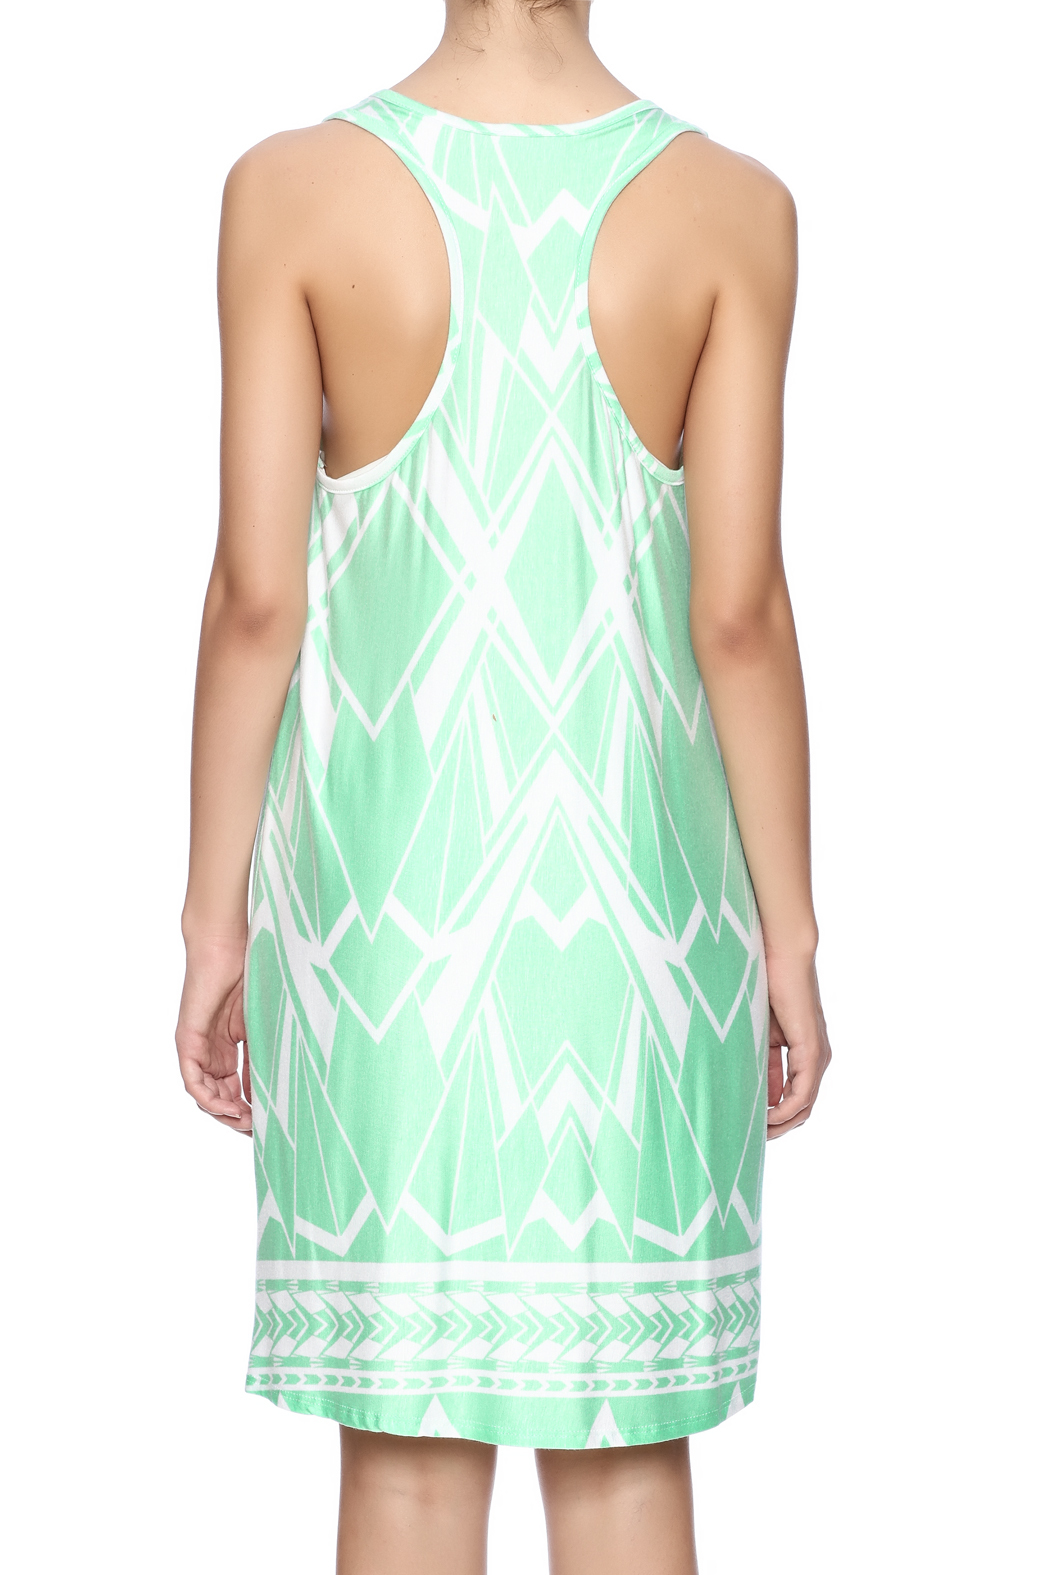 Fantastic Fawn Printed Mint Dress - Back Cropped Image